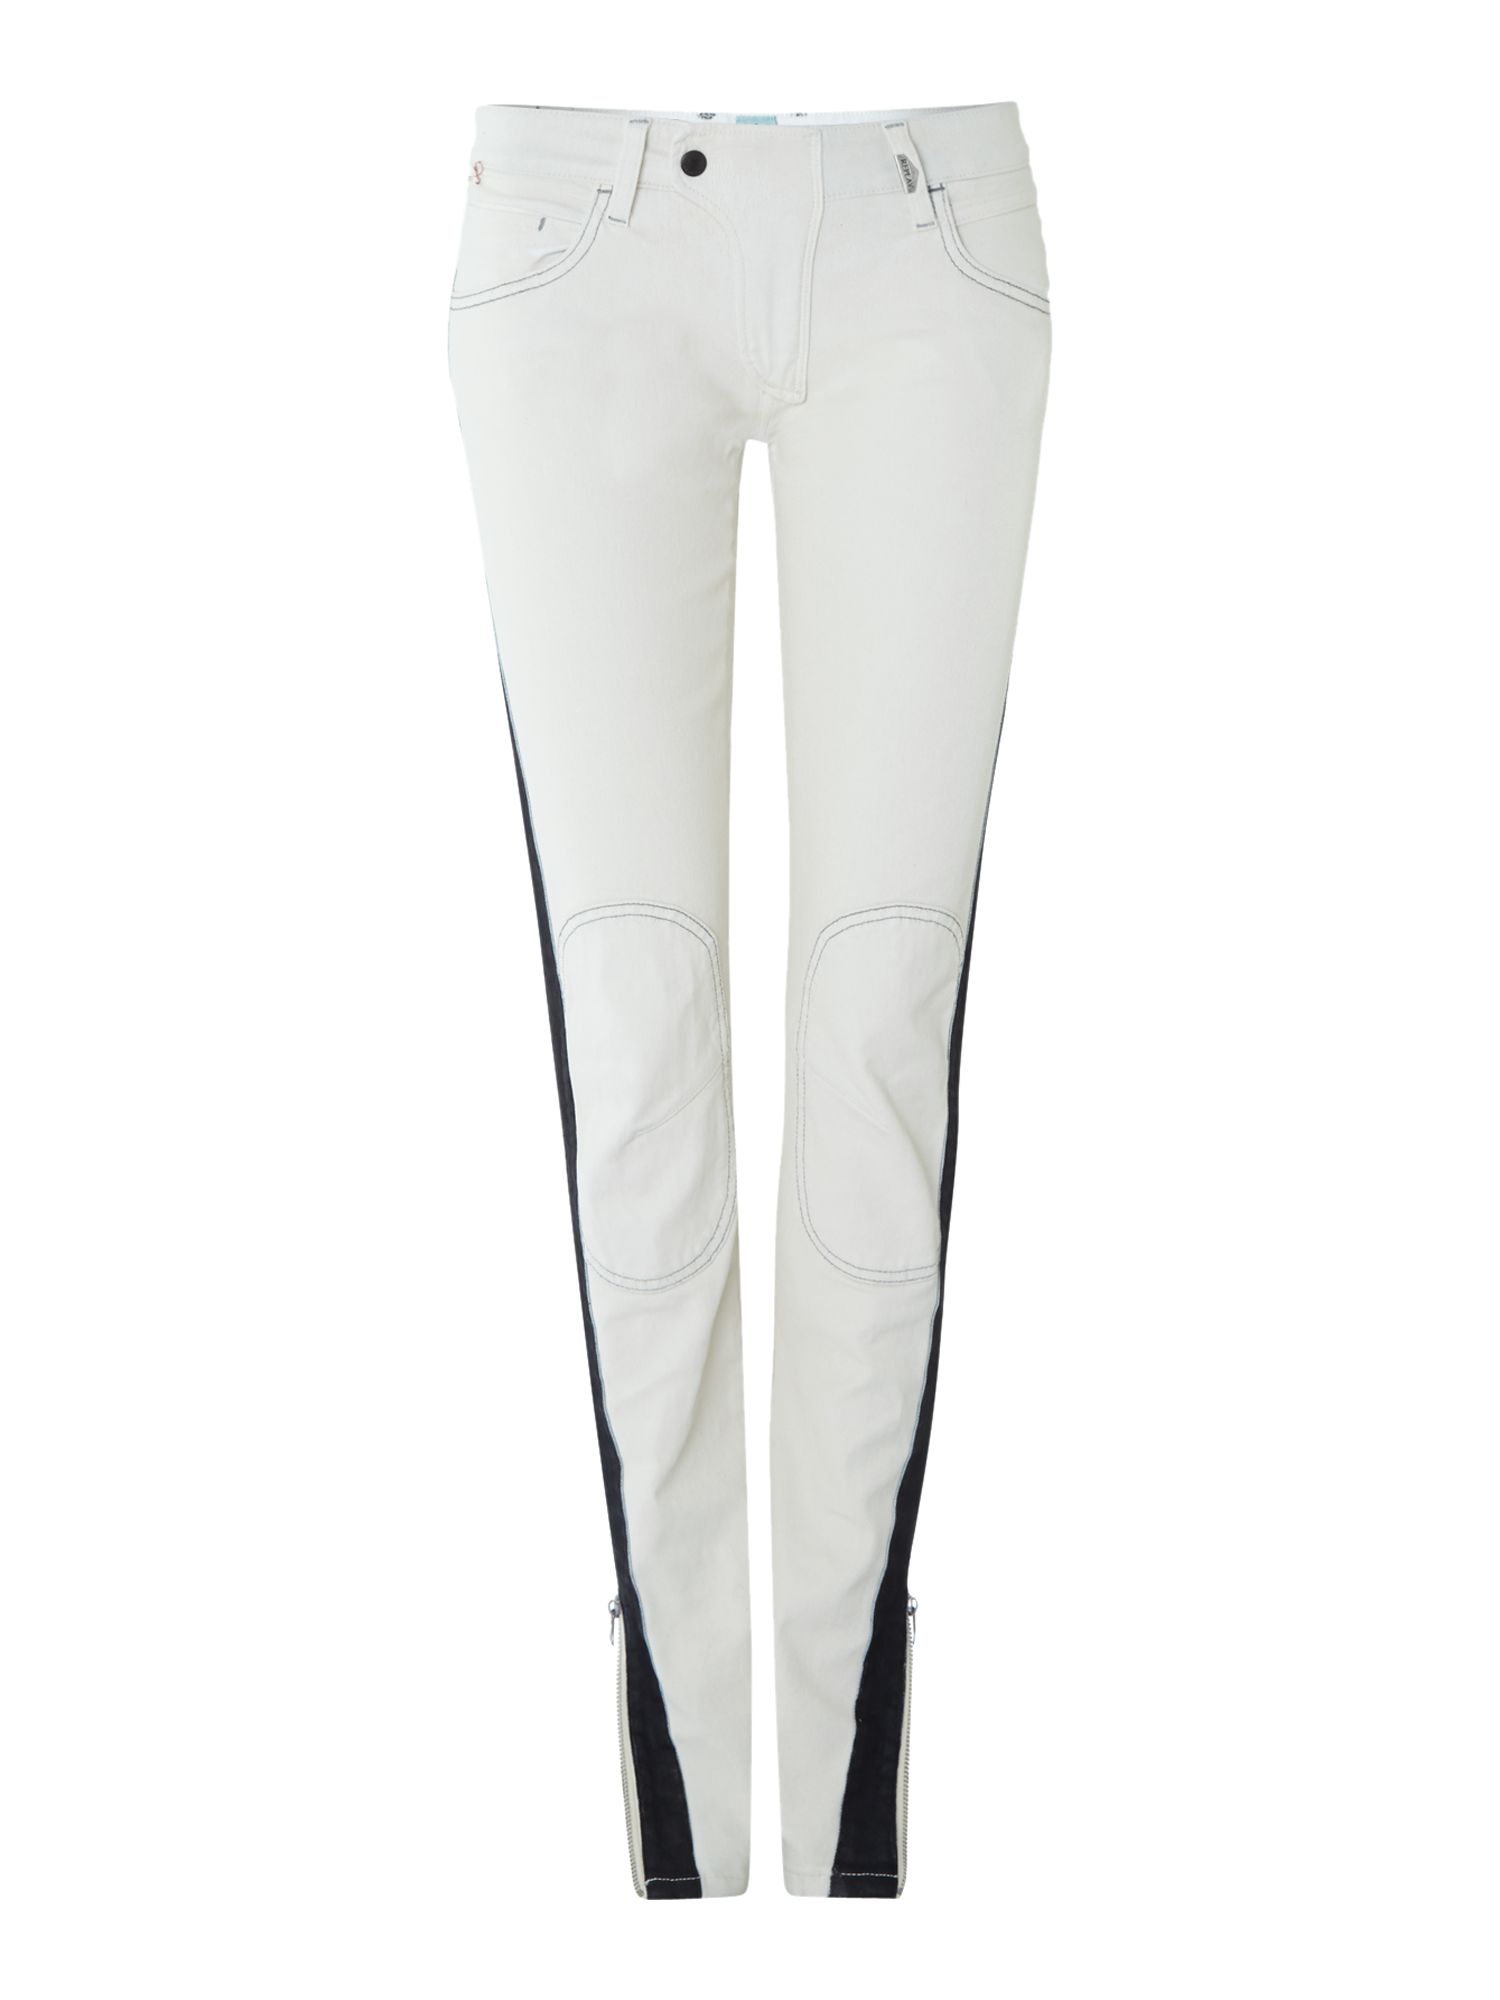 Slim biker jeans, regular leg